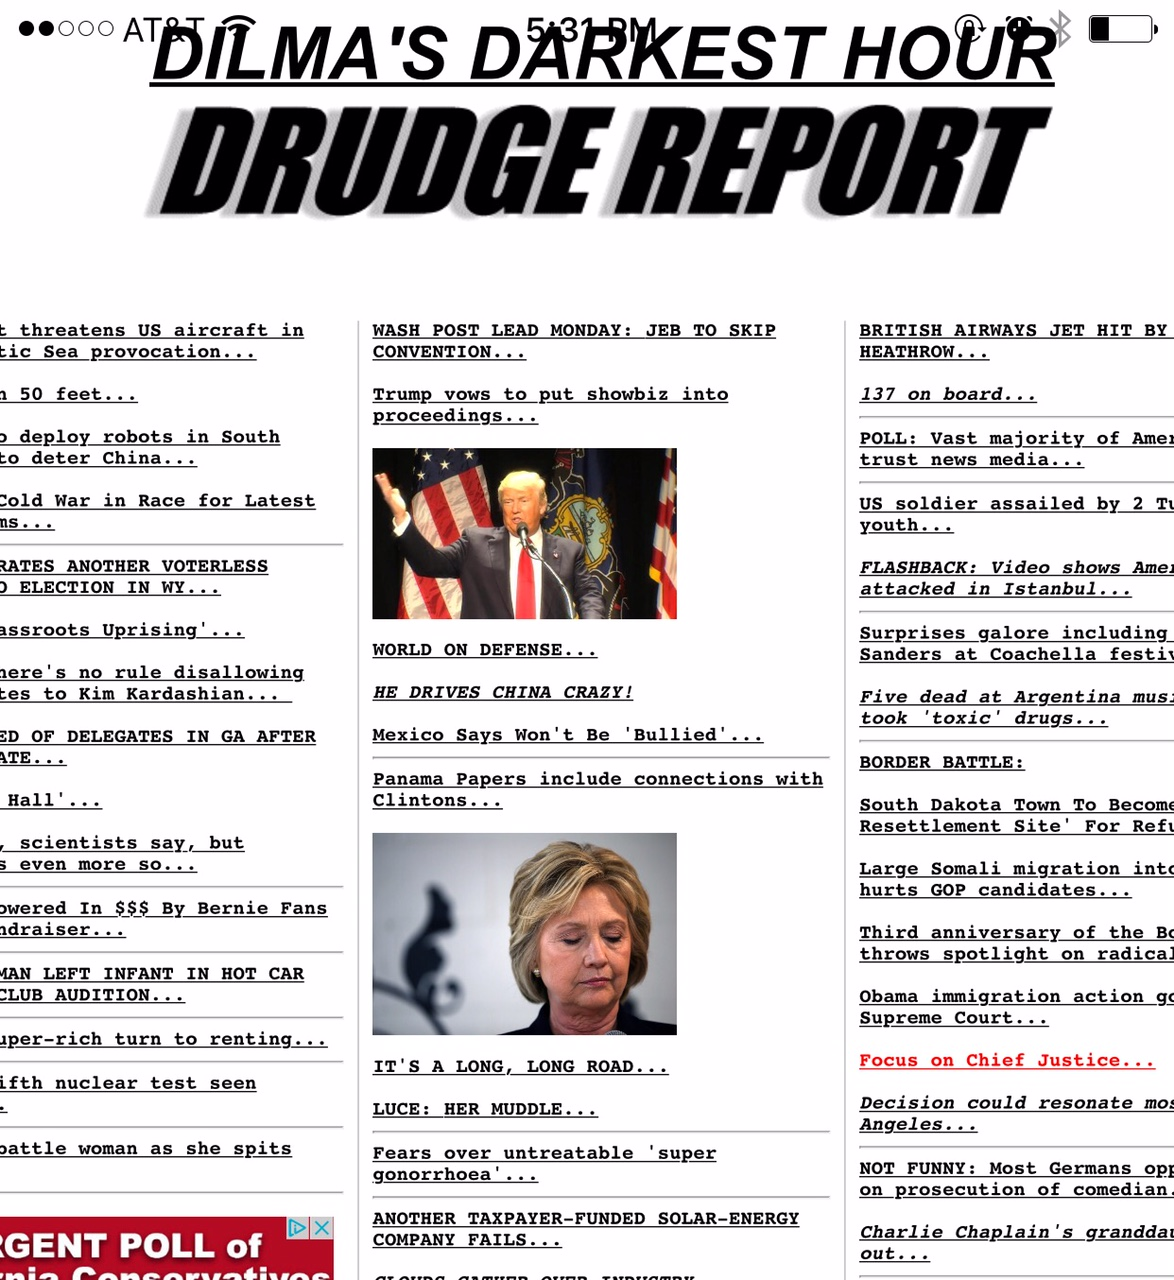 April 17, 2016: We made DRUDGE REPORT... Kind of